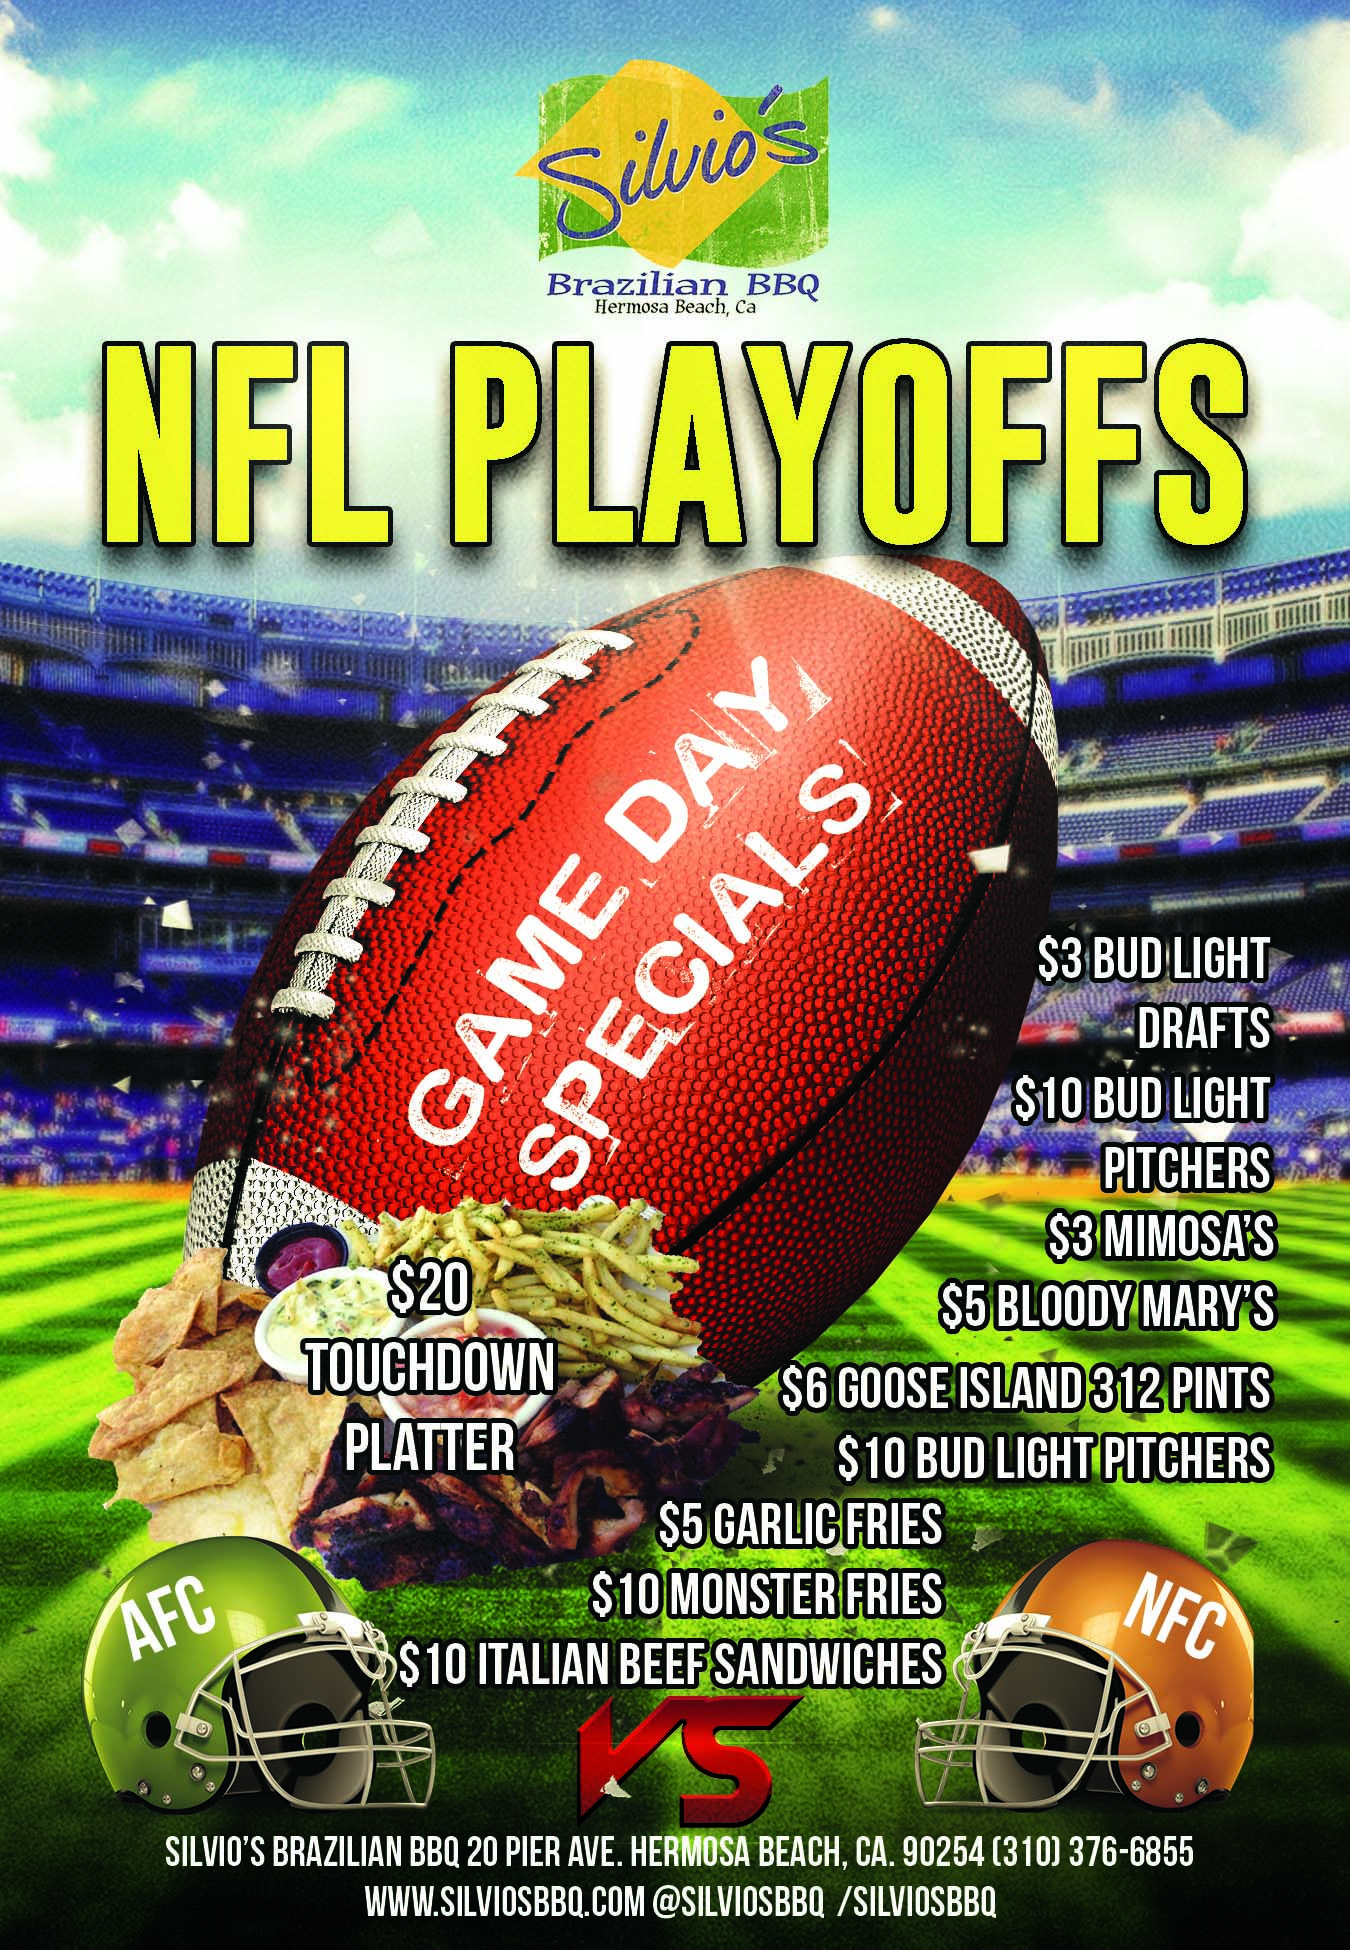 Nfl Divisional Round This Weekend Come Watch The Games Here At